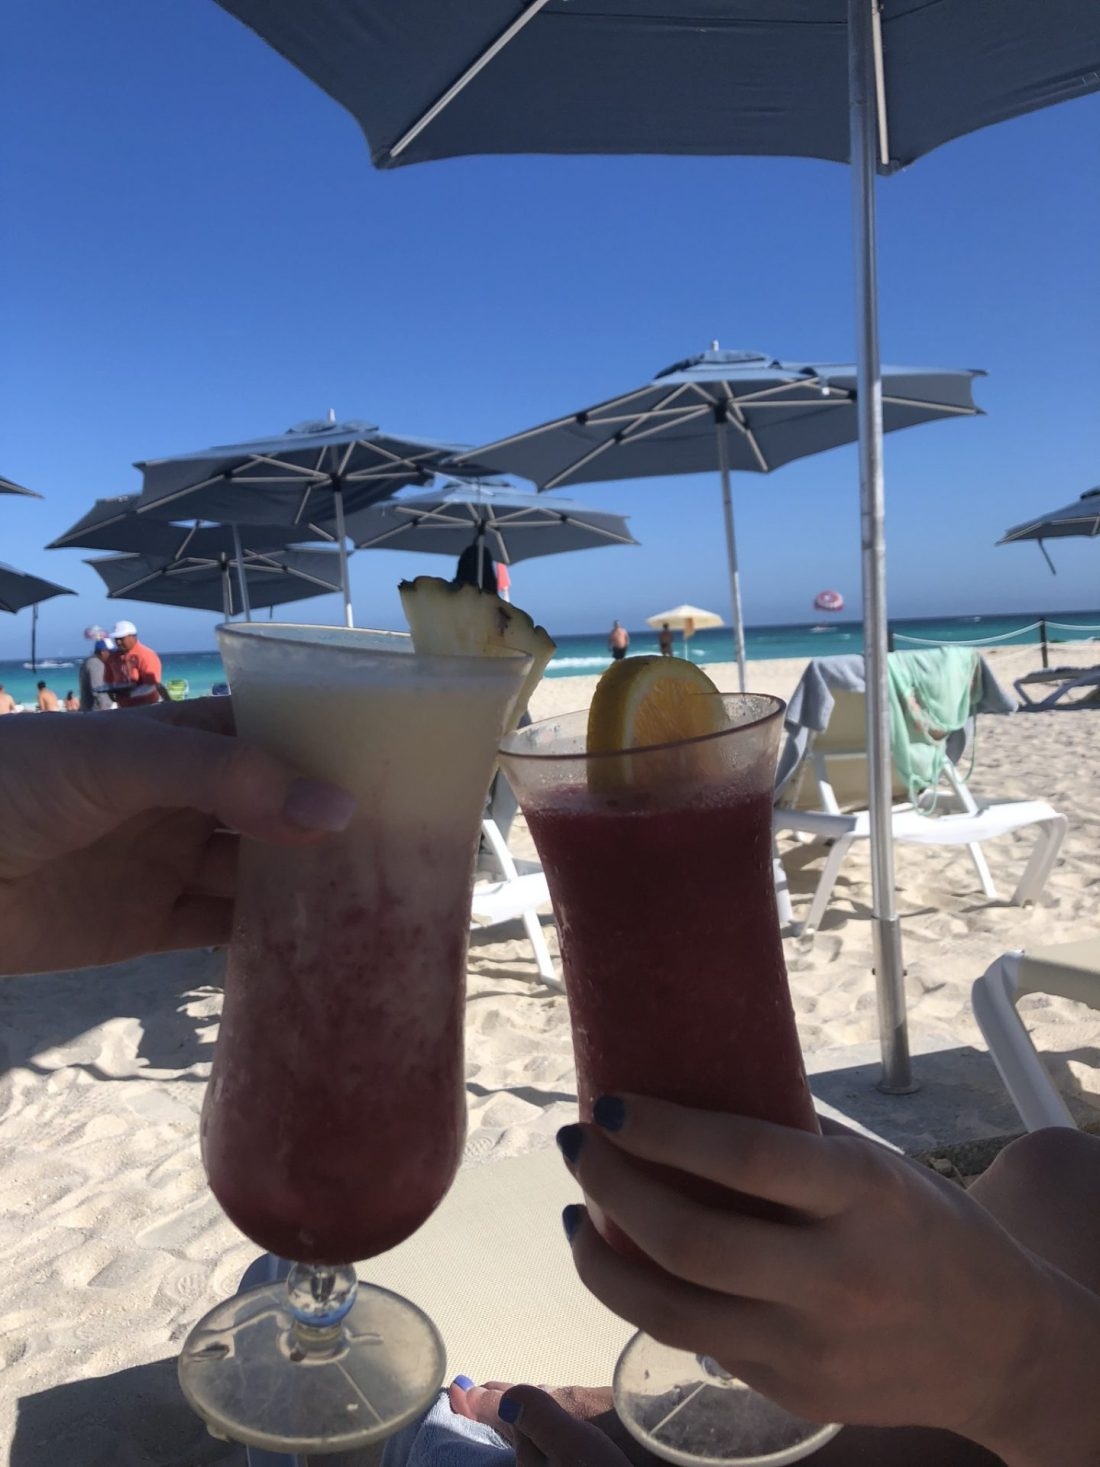 Cocktails at the beach in Cancun, Mexico